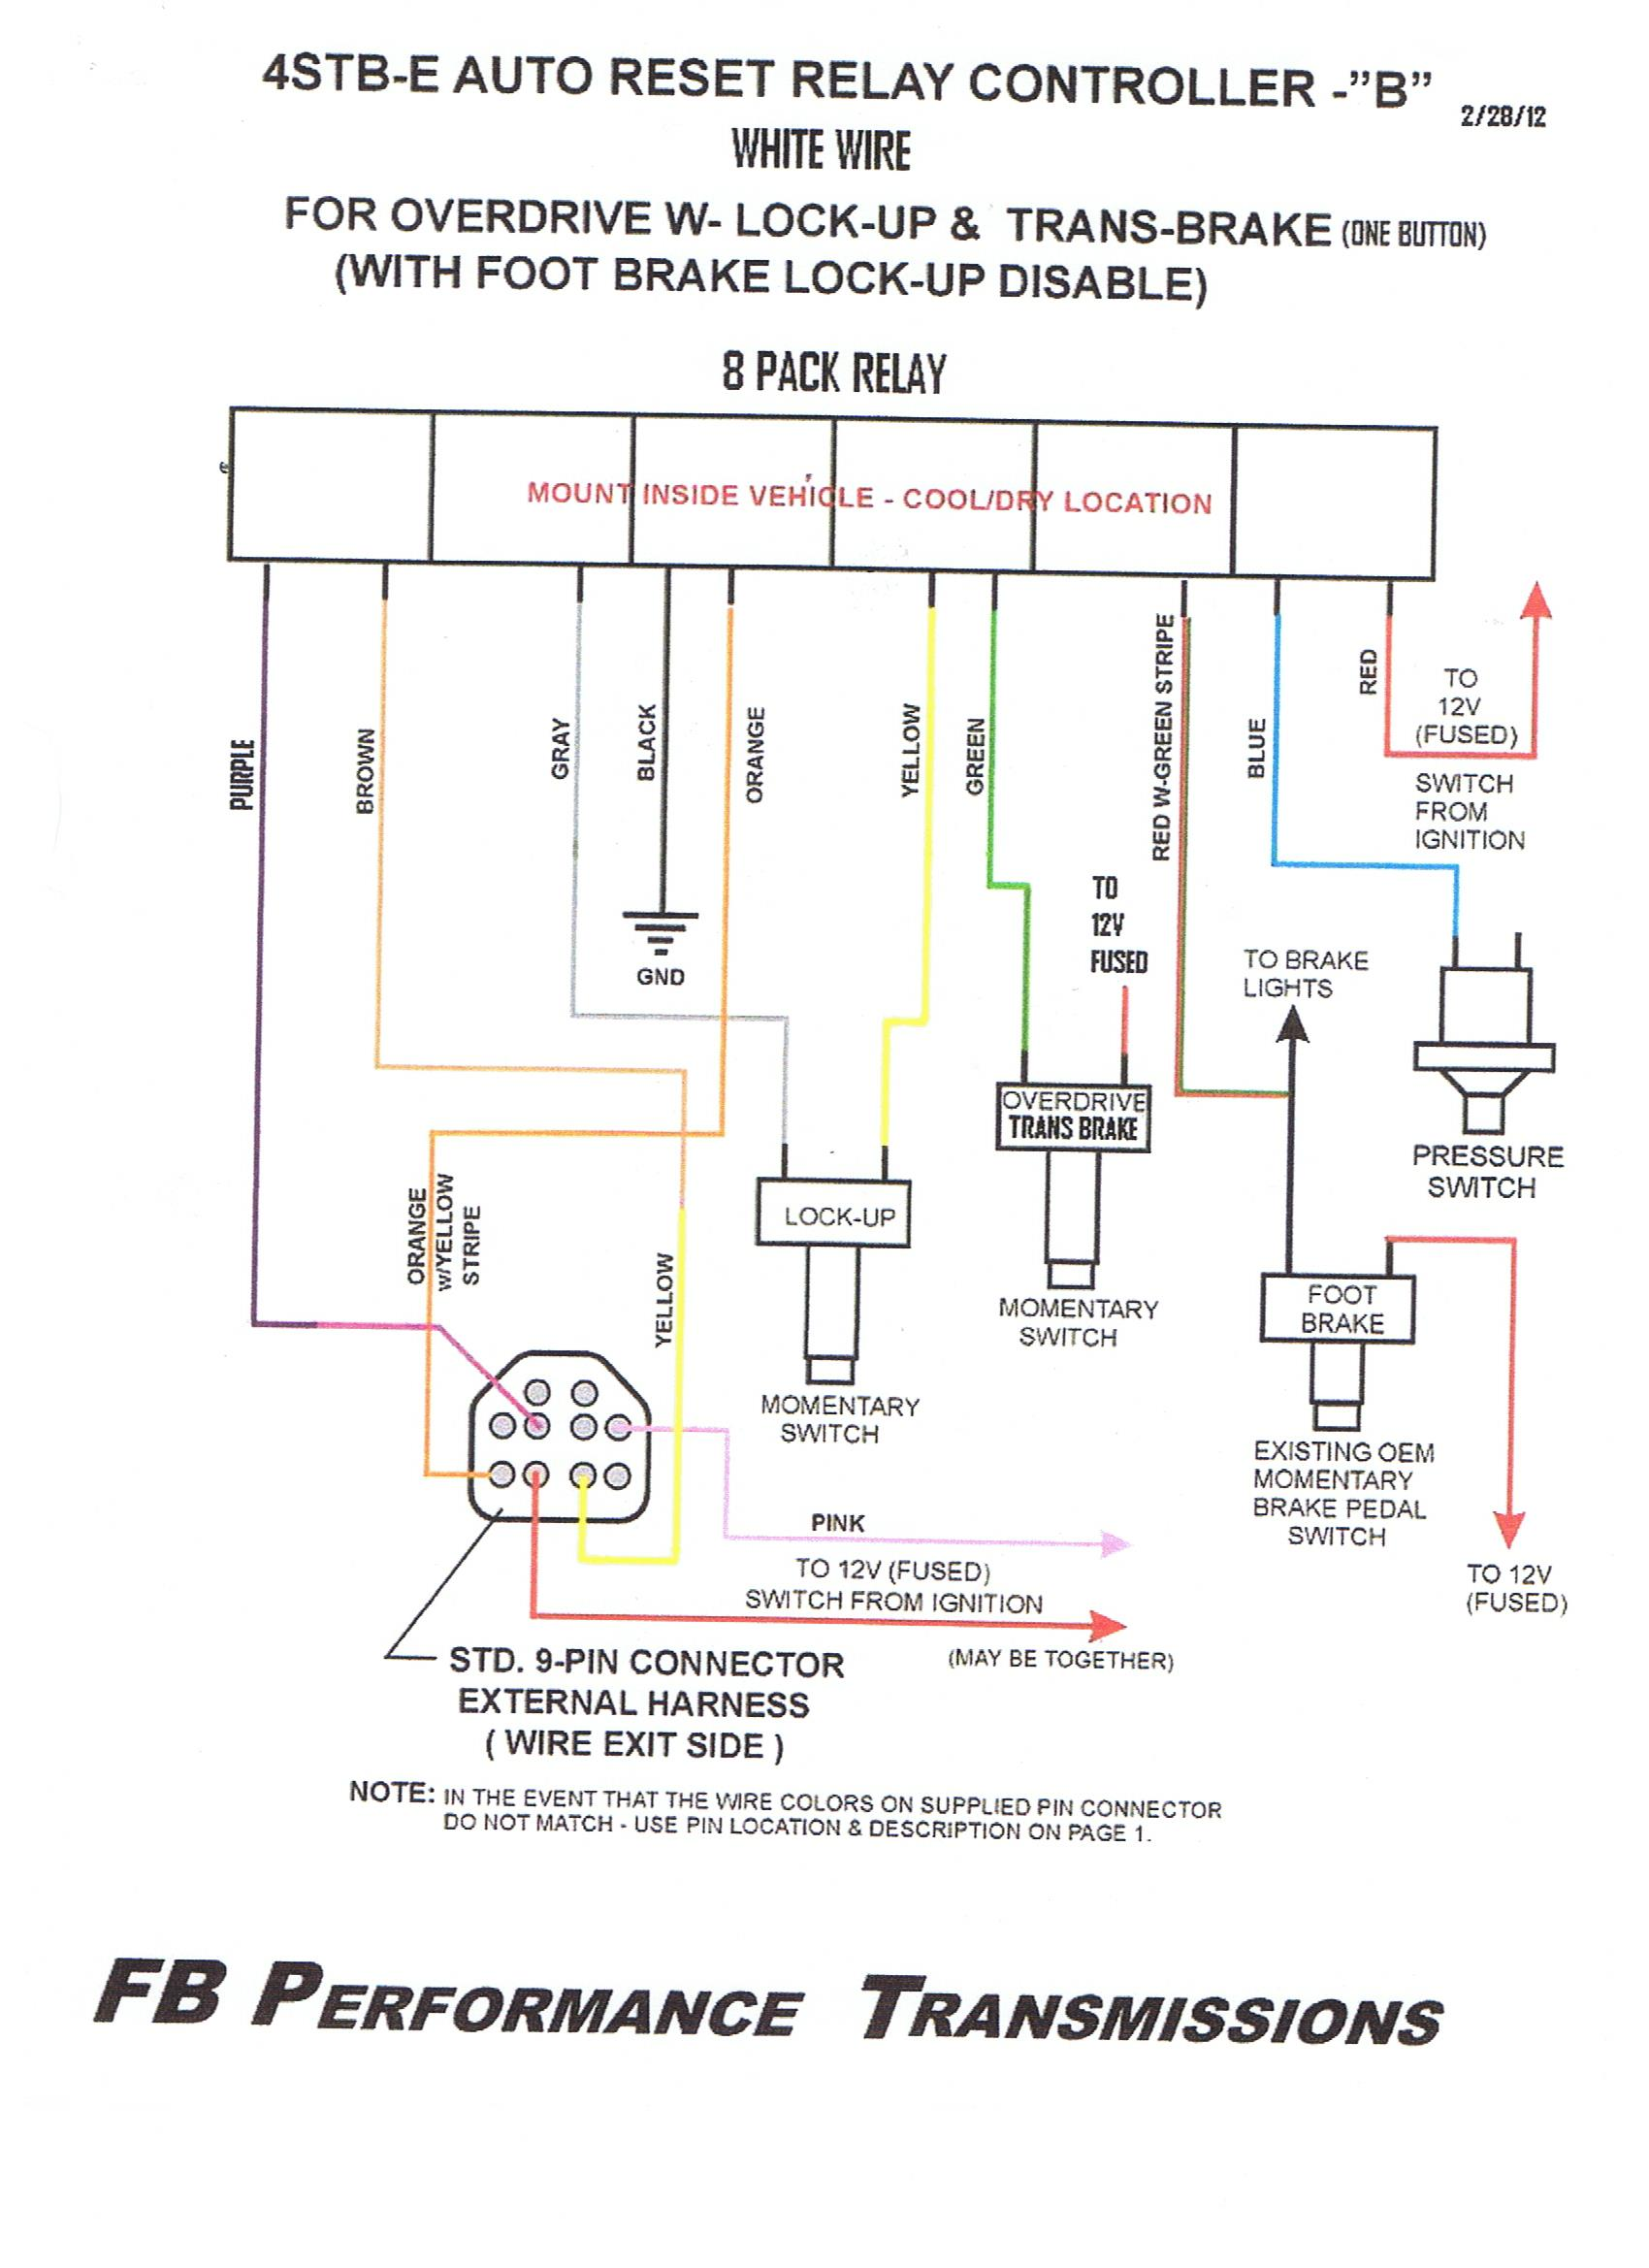 Neutral Safety Switch Wiring Diagram For C6 43 Rear Drum Brake Ford Truck Enthusiasts Forums Technical Advice 005 Copy At